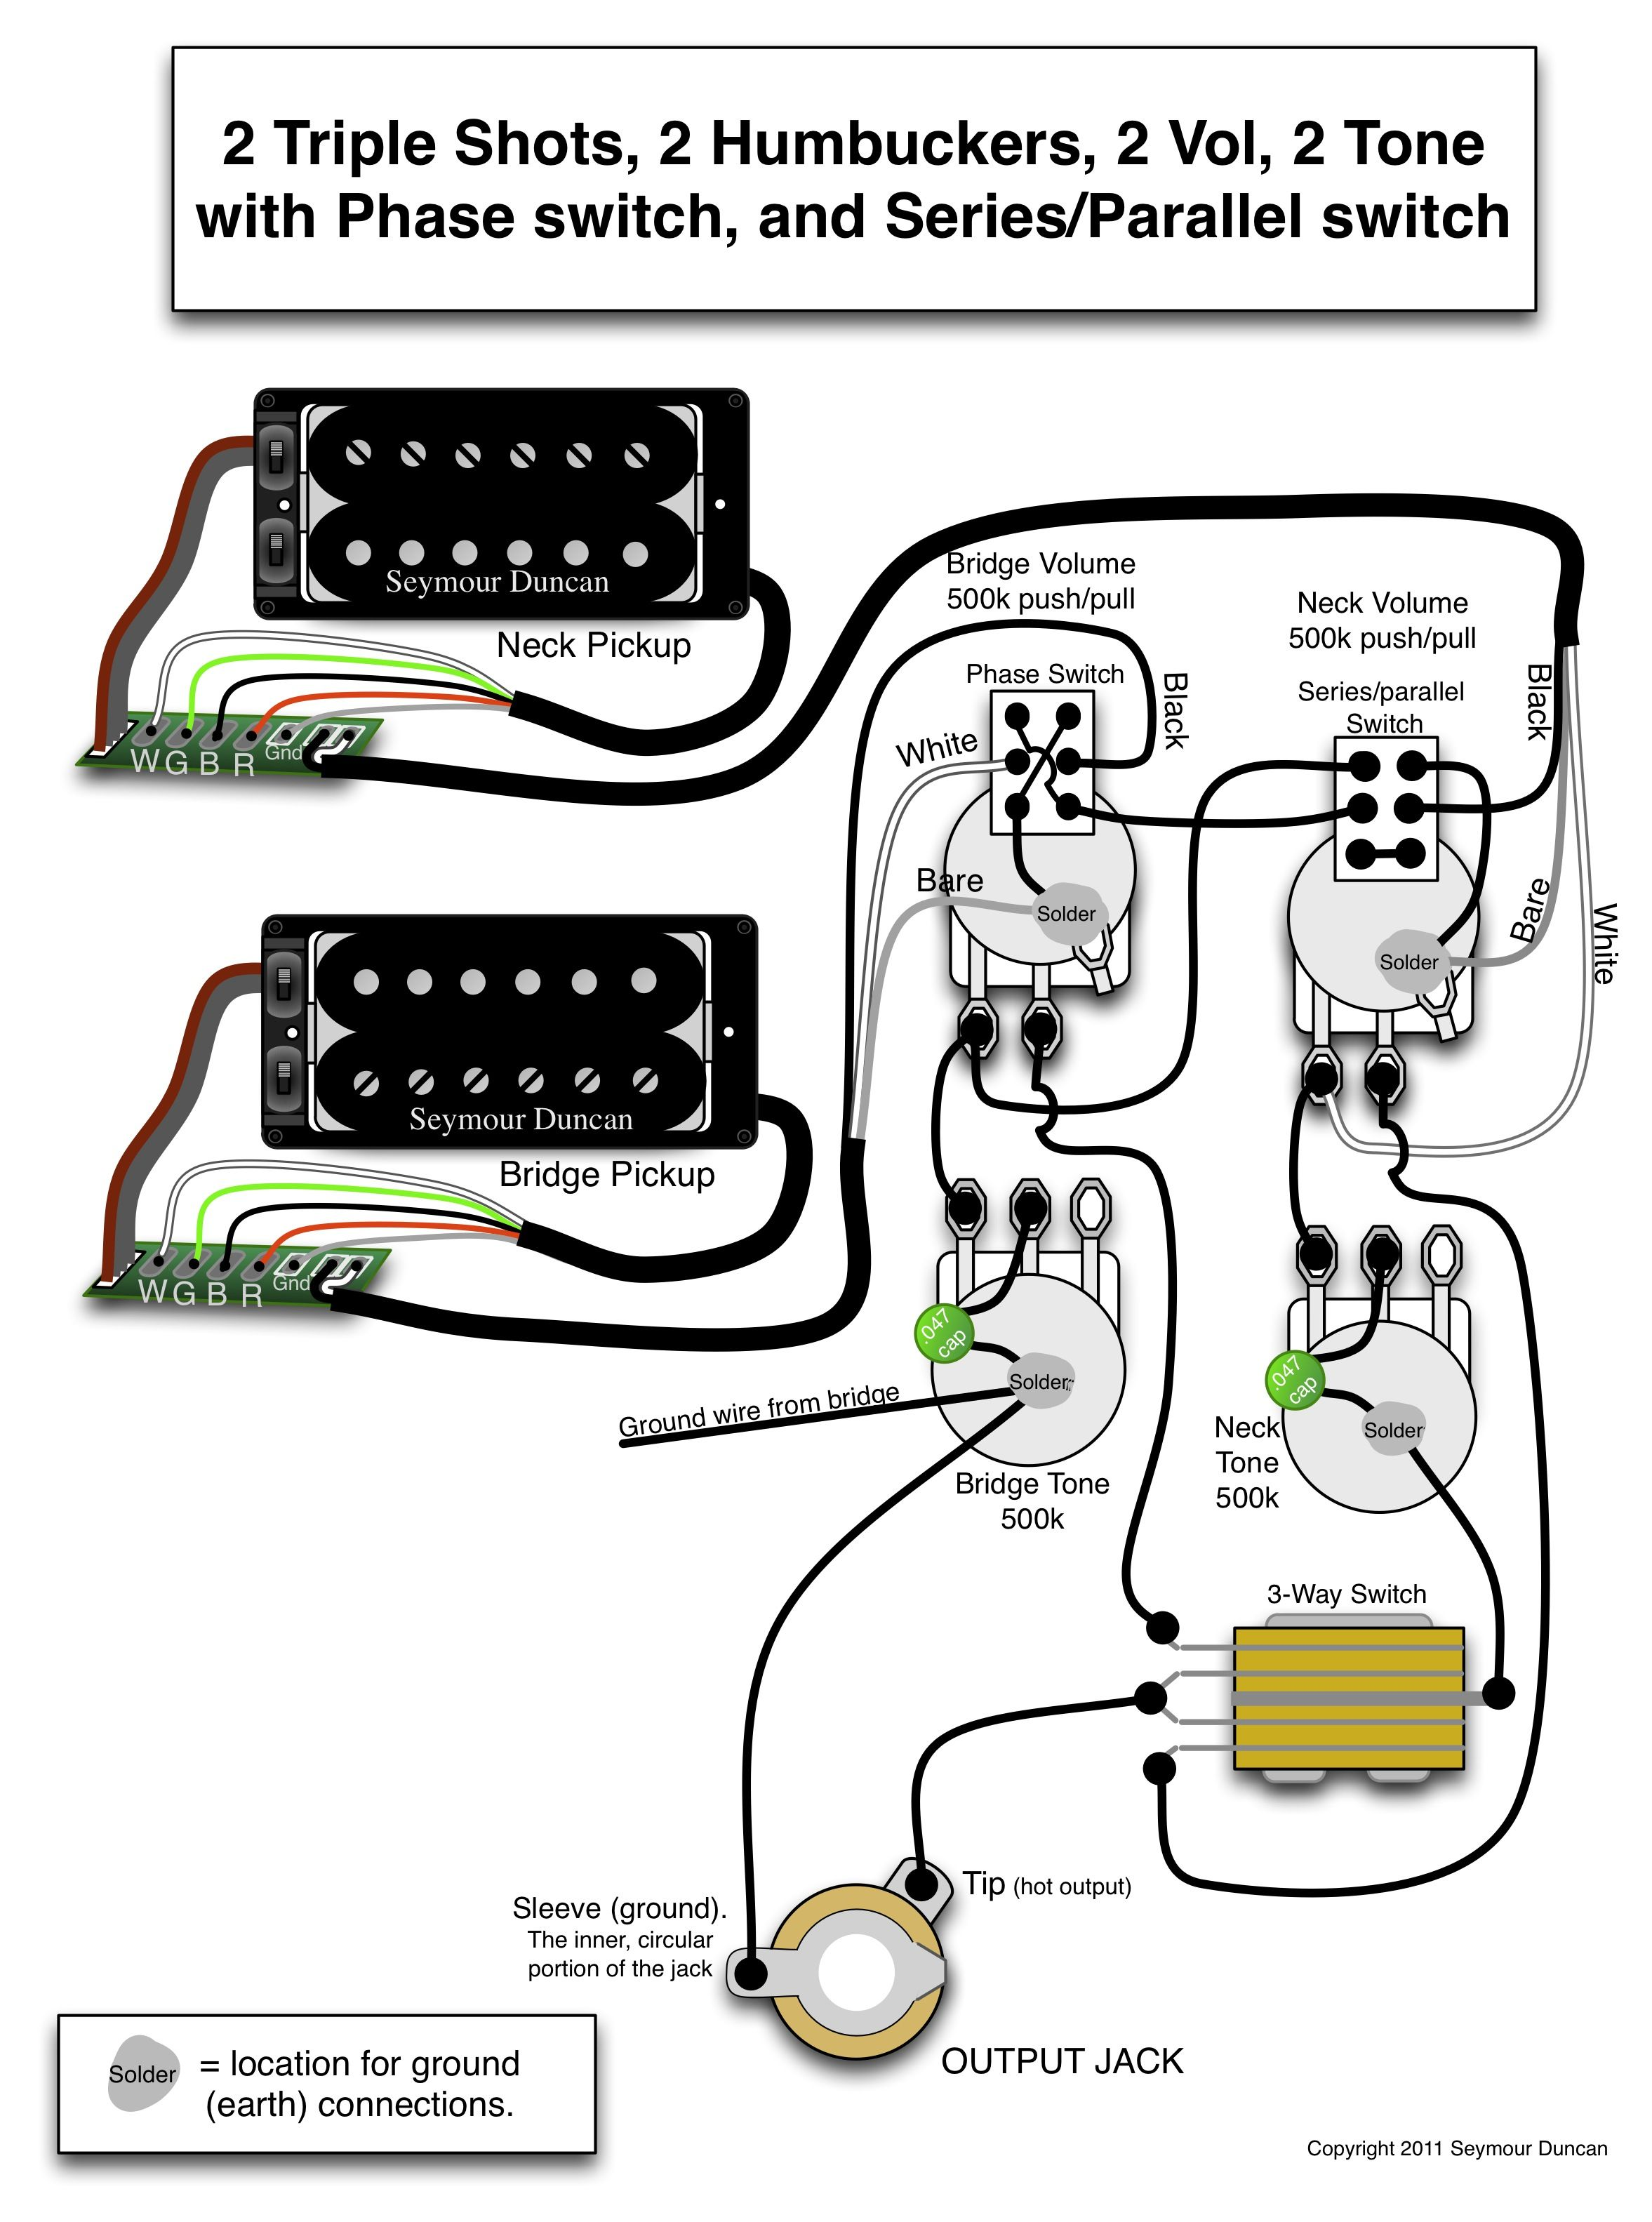 seymour duncan wiring diagram 2 triple shots 2 humbuckers 2 vol humbucker pickup wiring diagram fender triple coil pickup wiring [ 2354 x 3166 Pixel ]